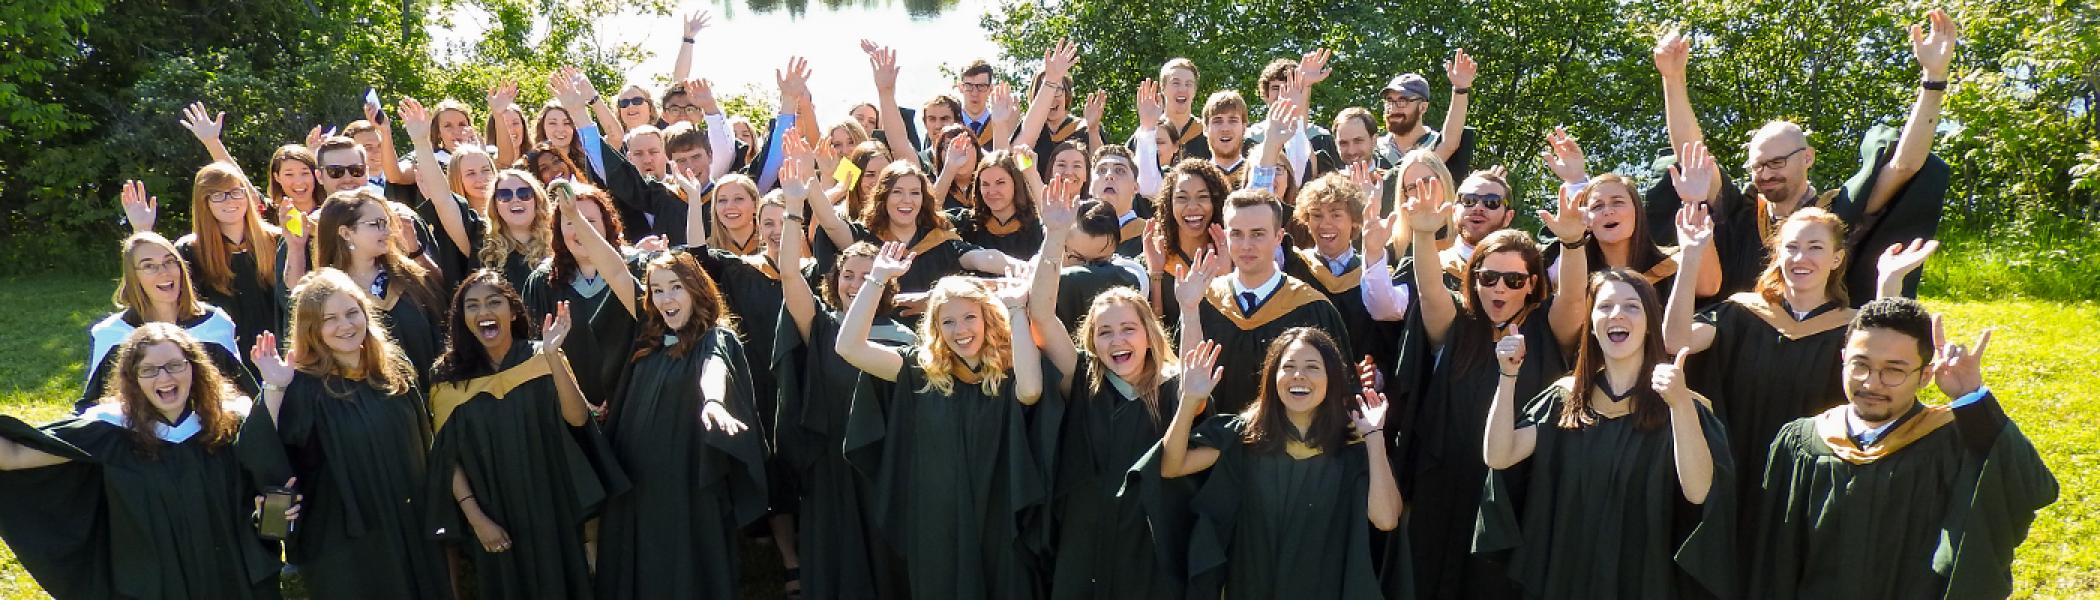 A large group of students standing together in their convocation gowns looking at the camera, smiling